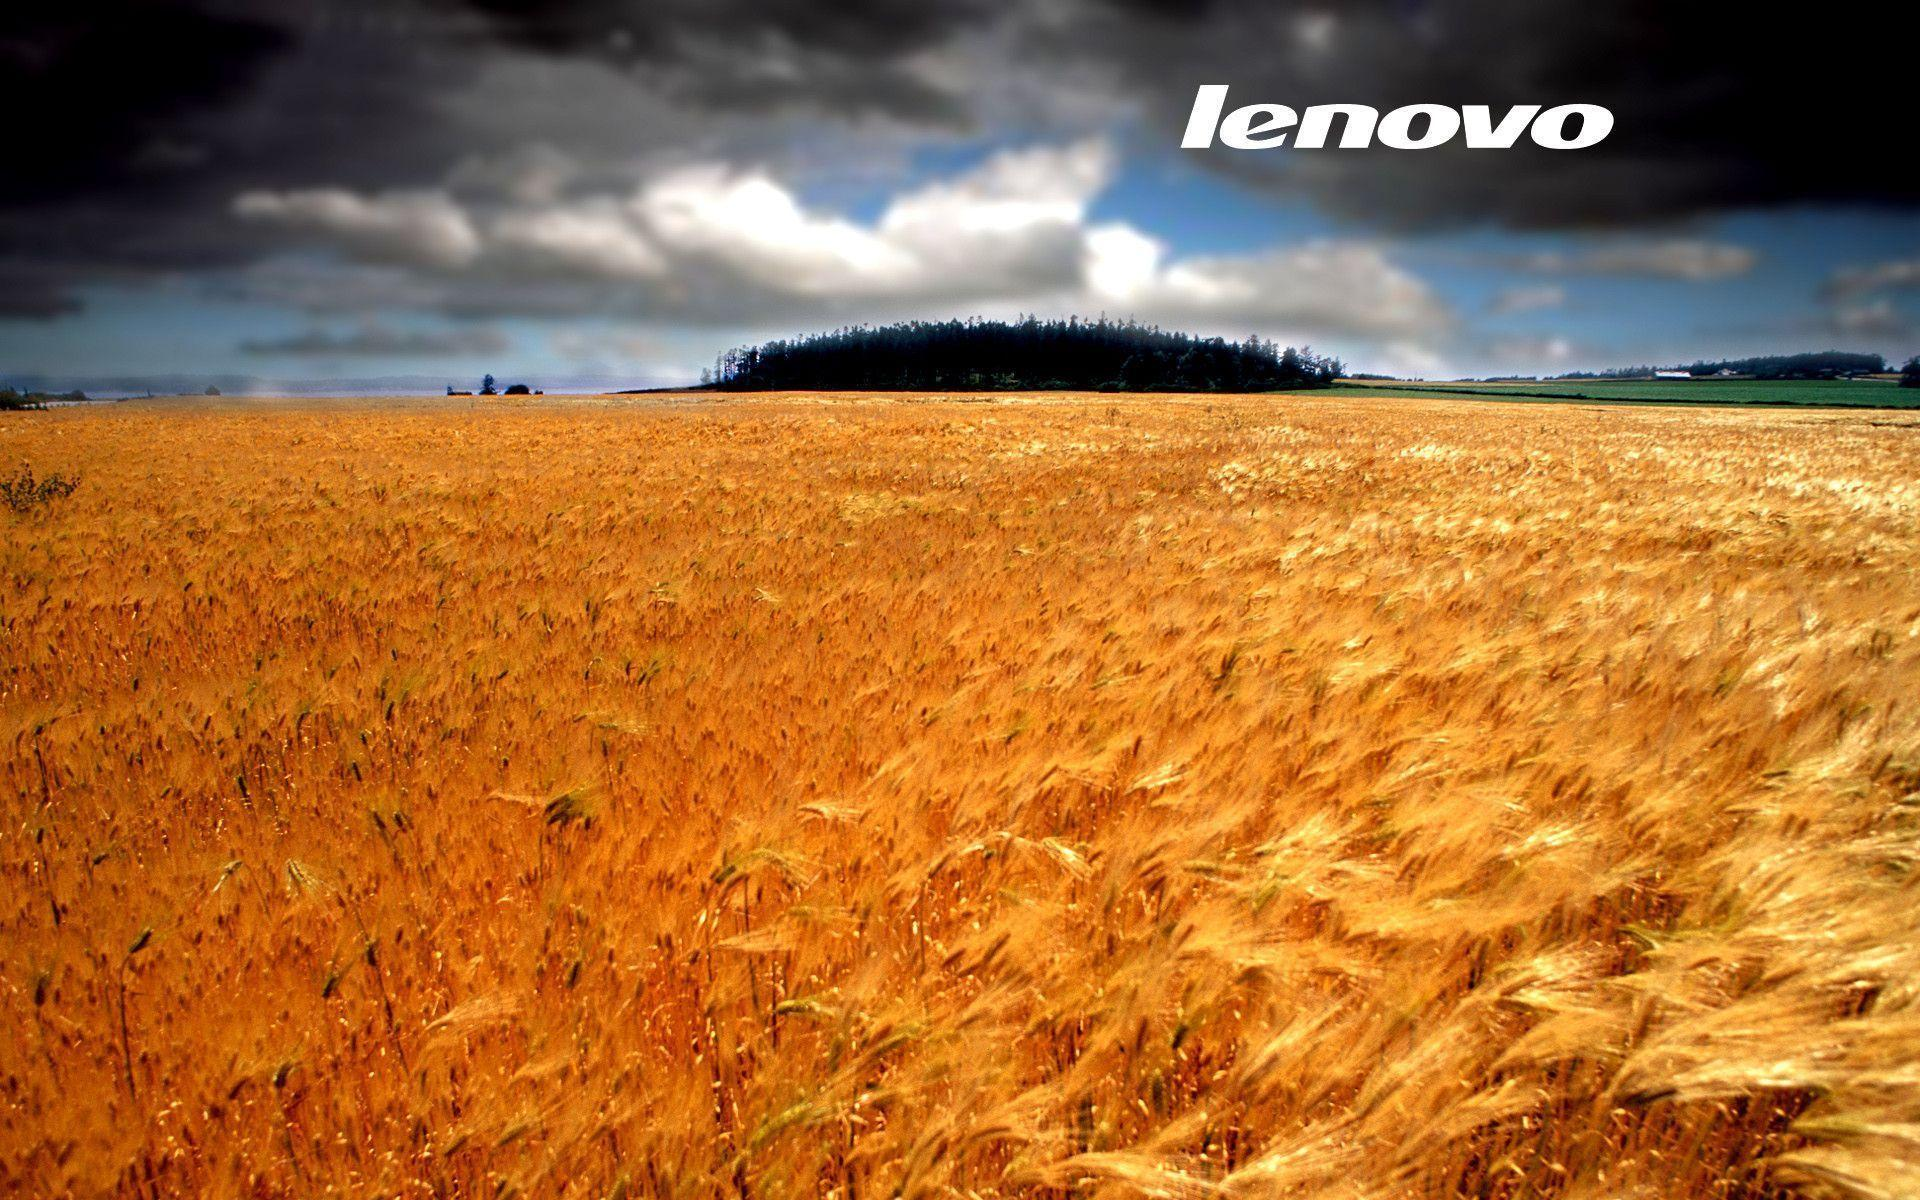 Lenovo wallpapers wallpaper cave lenovo wallpapers full hd wallpaper search voltagebd Image collections